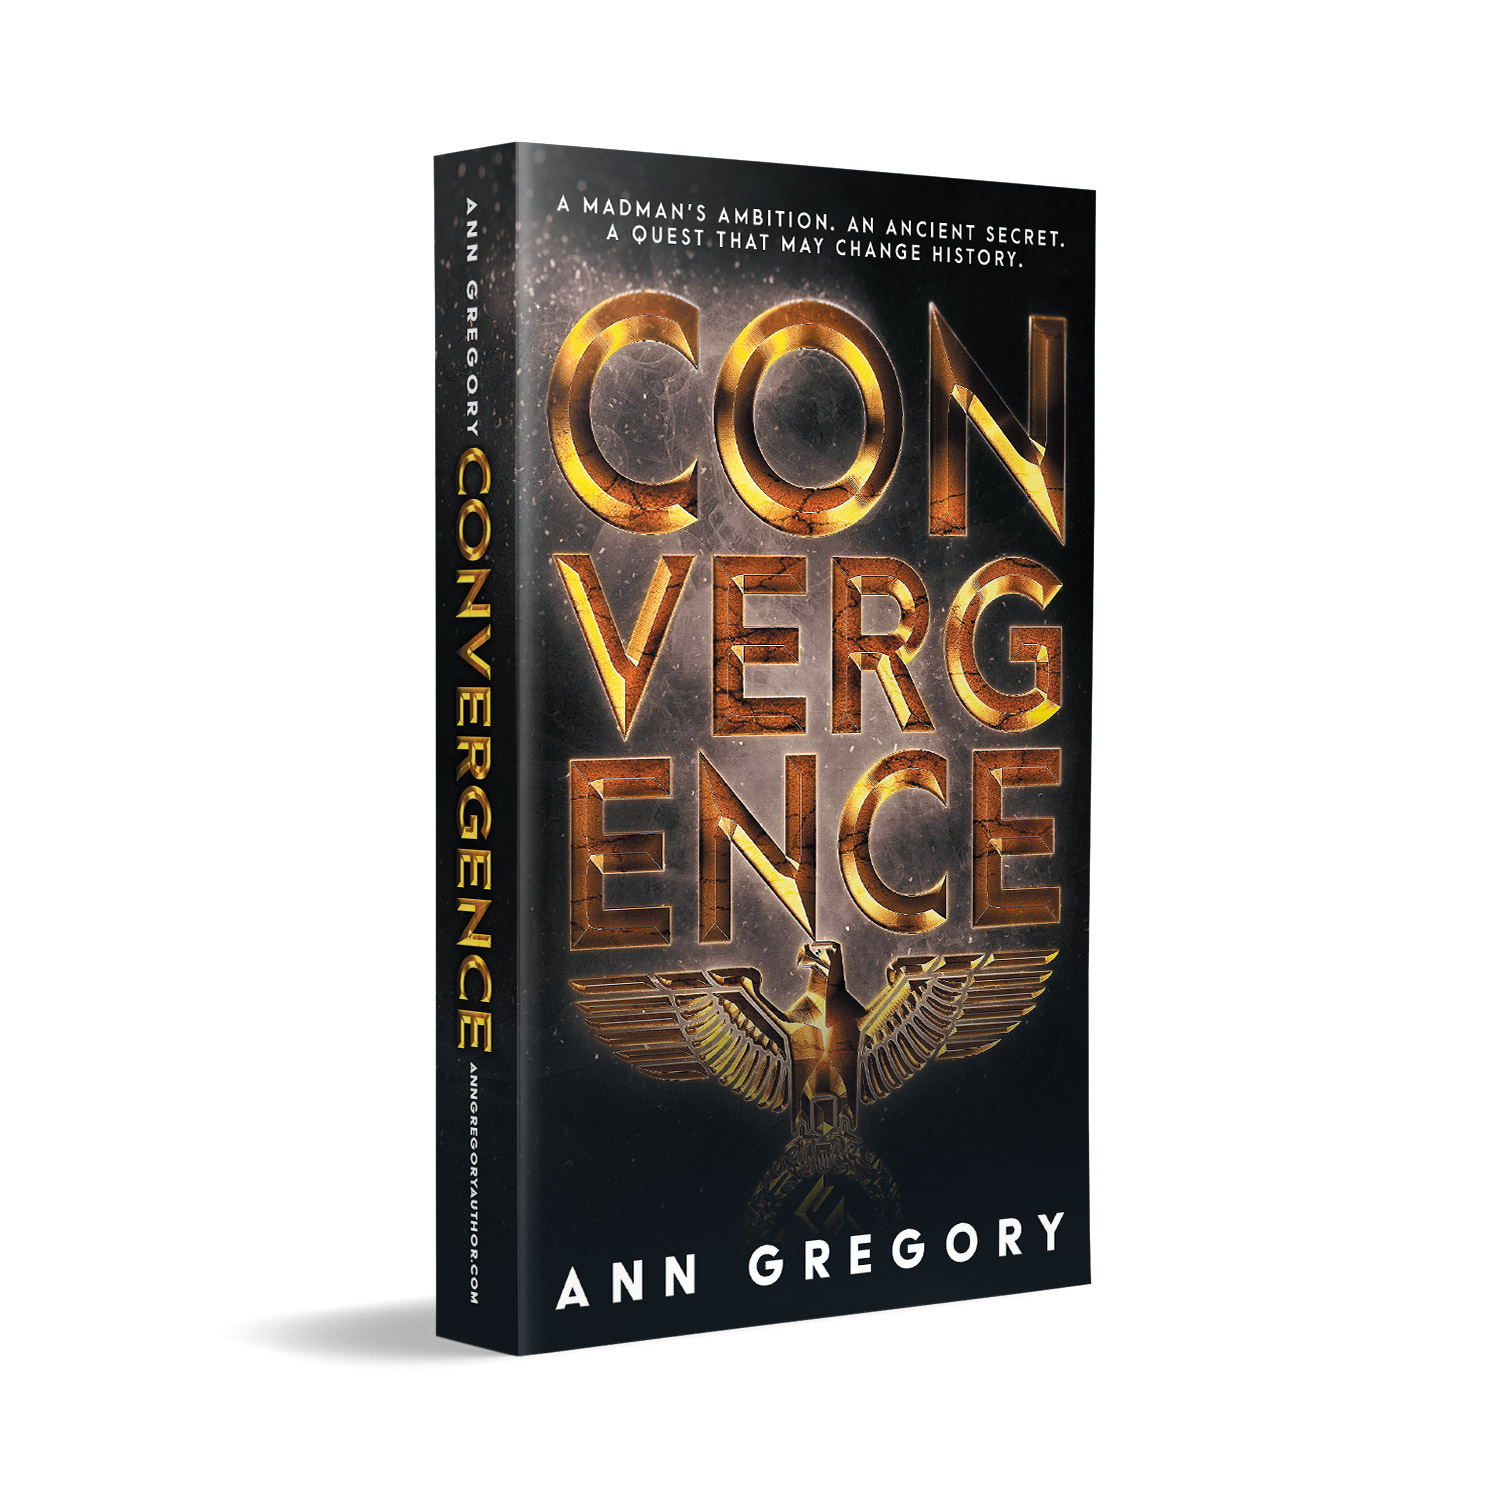 'Convergence' is a globe-trotting, pre-WWII conspiracy thriller. The author is Ann Gregory. The book cover design is by Mark Thomas. To learn more about what Mark could do for your book, please visit coverness.com.